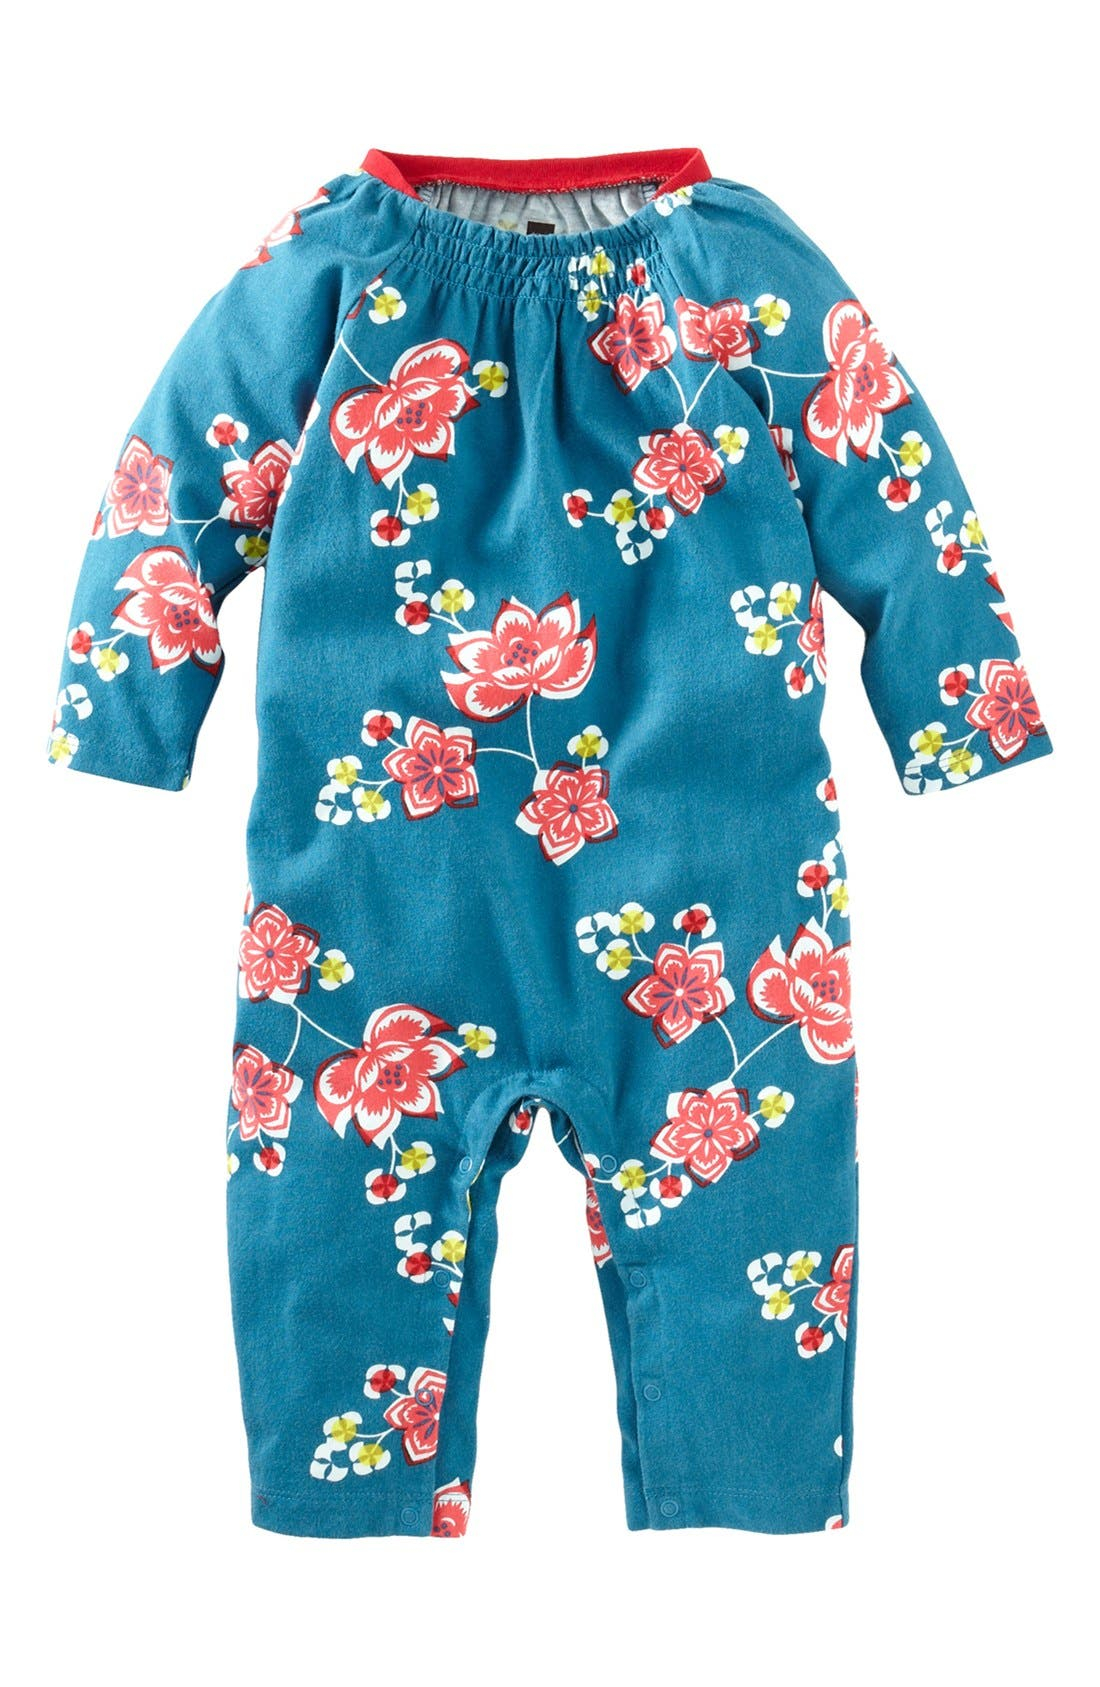 Alternate Image 1 Selected - Tea Collection 'Jianzhi' Romper (Baby Girls)